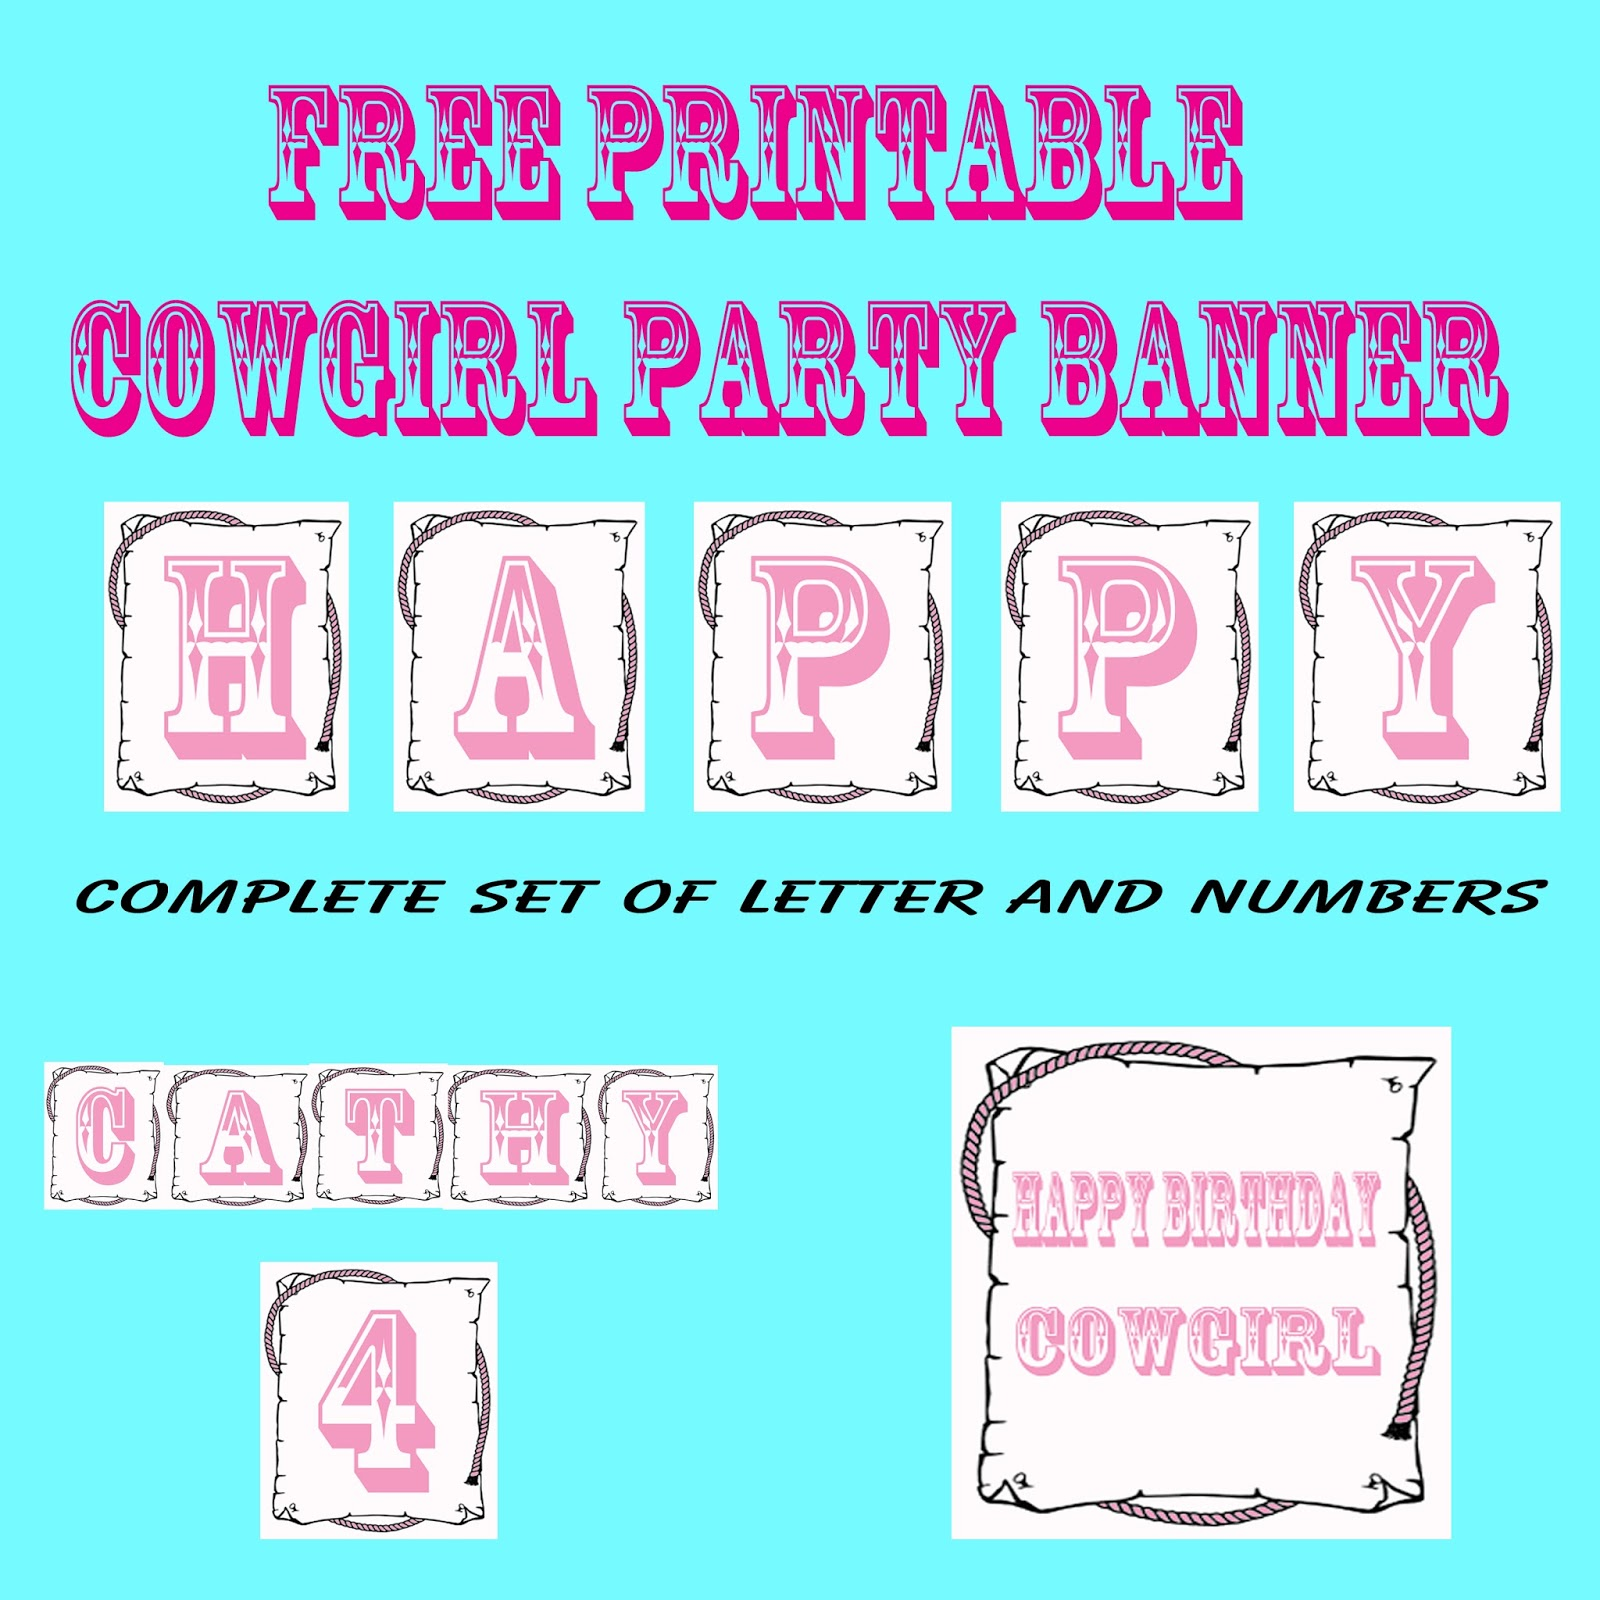 Crafts And Creations By Dancing Cowgirl Design: Free Printable ...